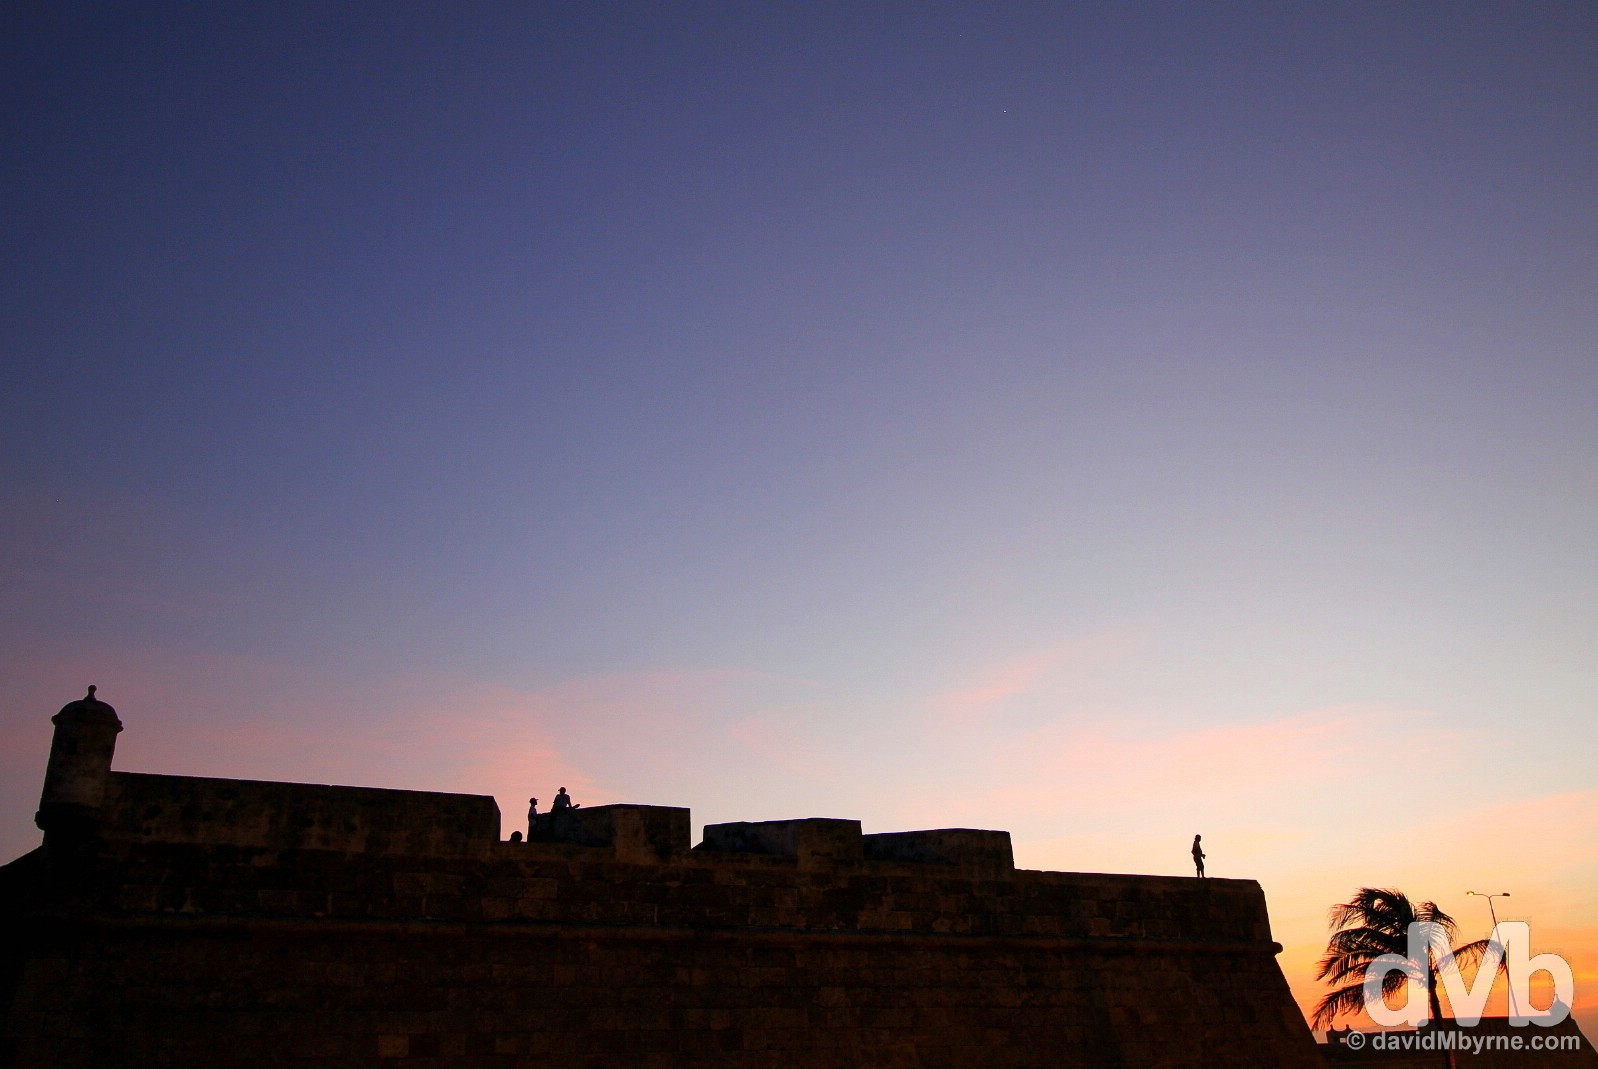 A section of Las Murallas, the Old Town walls of Cartagena, at twilight. Cartagena, Colombia. June 24, 2015.